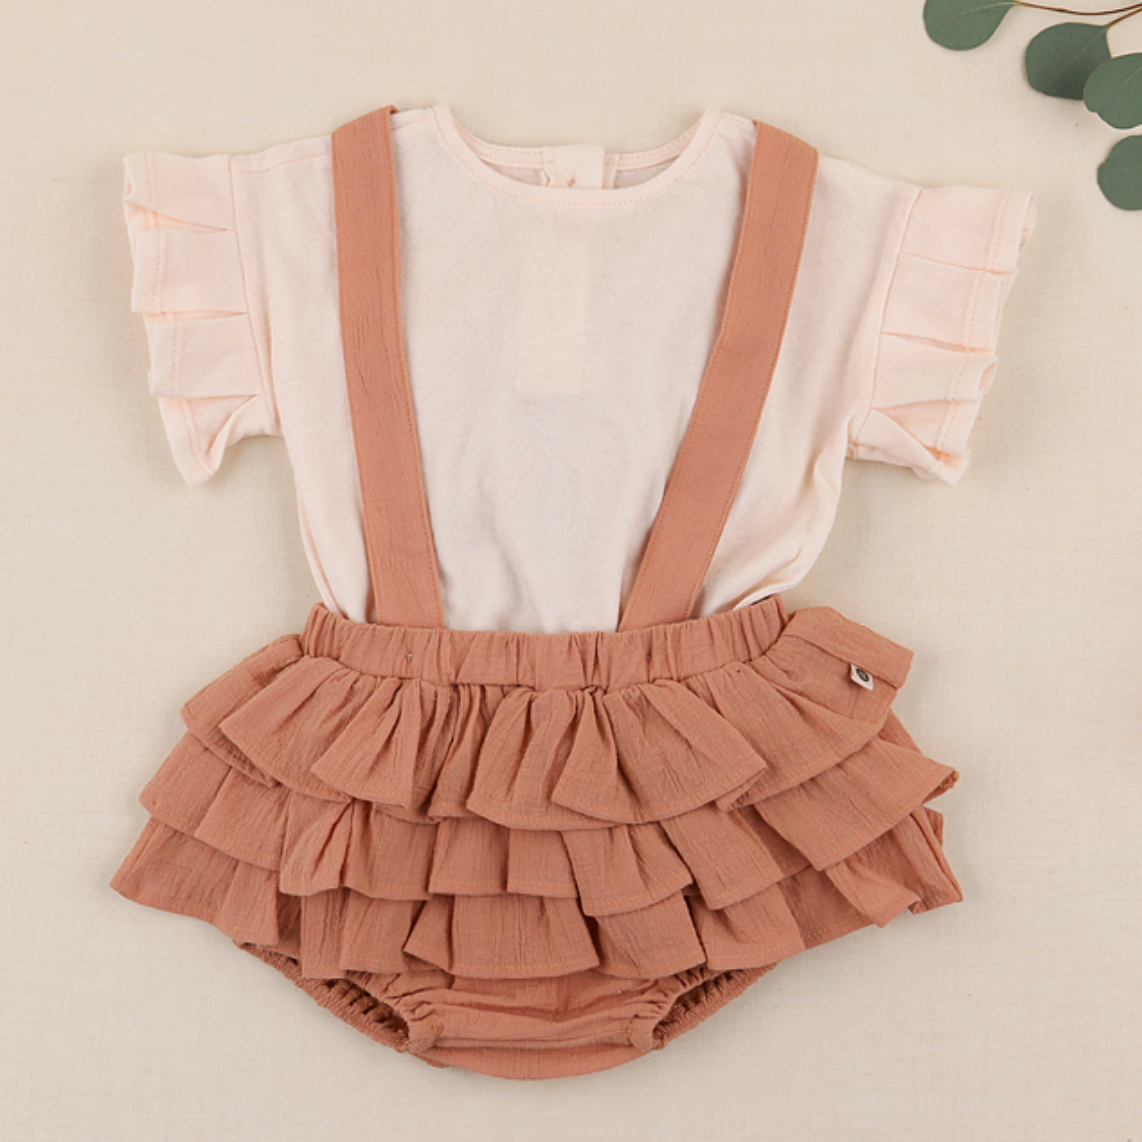 Cocobe Pleats Tee - Peach